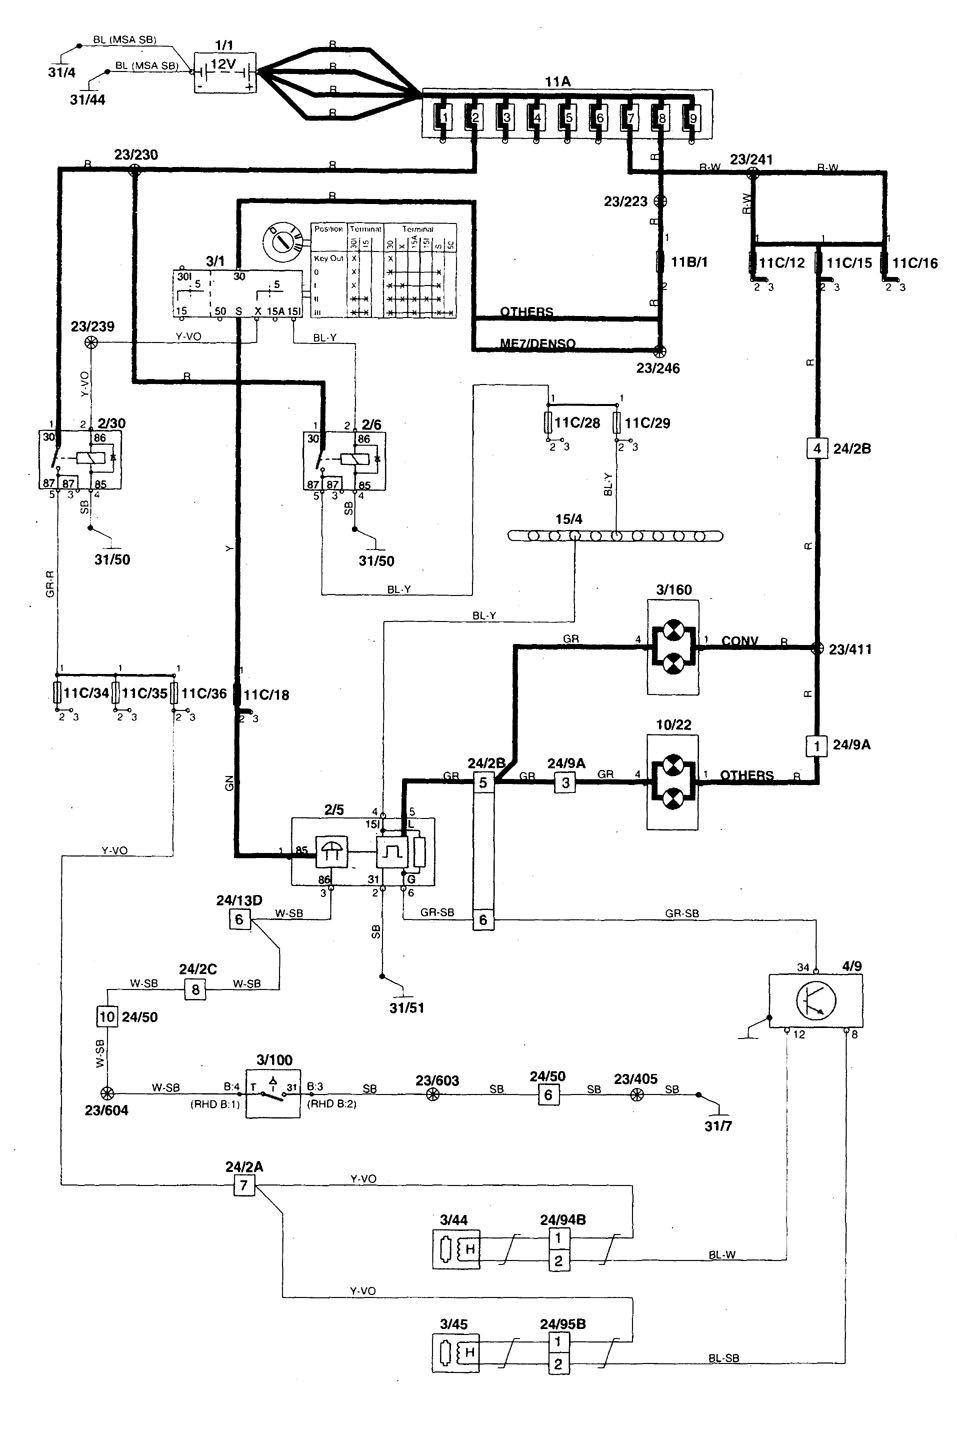 Volvo 850 Ignition Switch Wiring Diagram - 1997 Ford F 150 Fuse Diagram  Power Windows - coded-03.tukune.jeanjaures37.fr | Volvo V70 Ignition Wiring Diagram |  | Wiring Diagram Resource